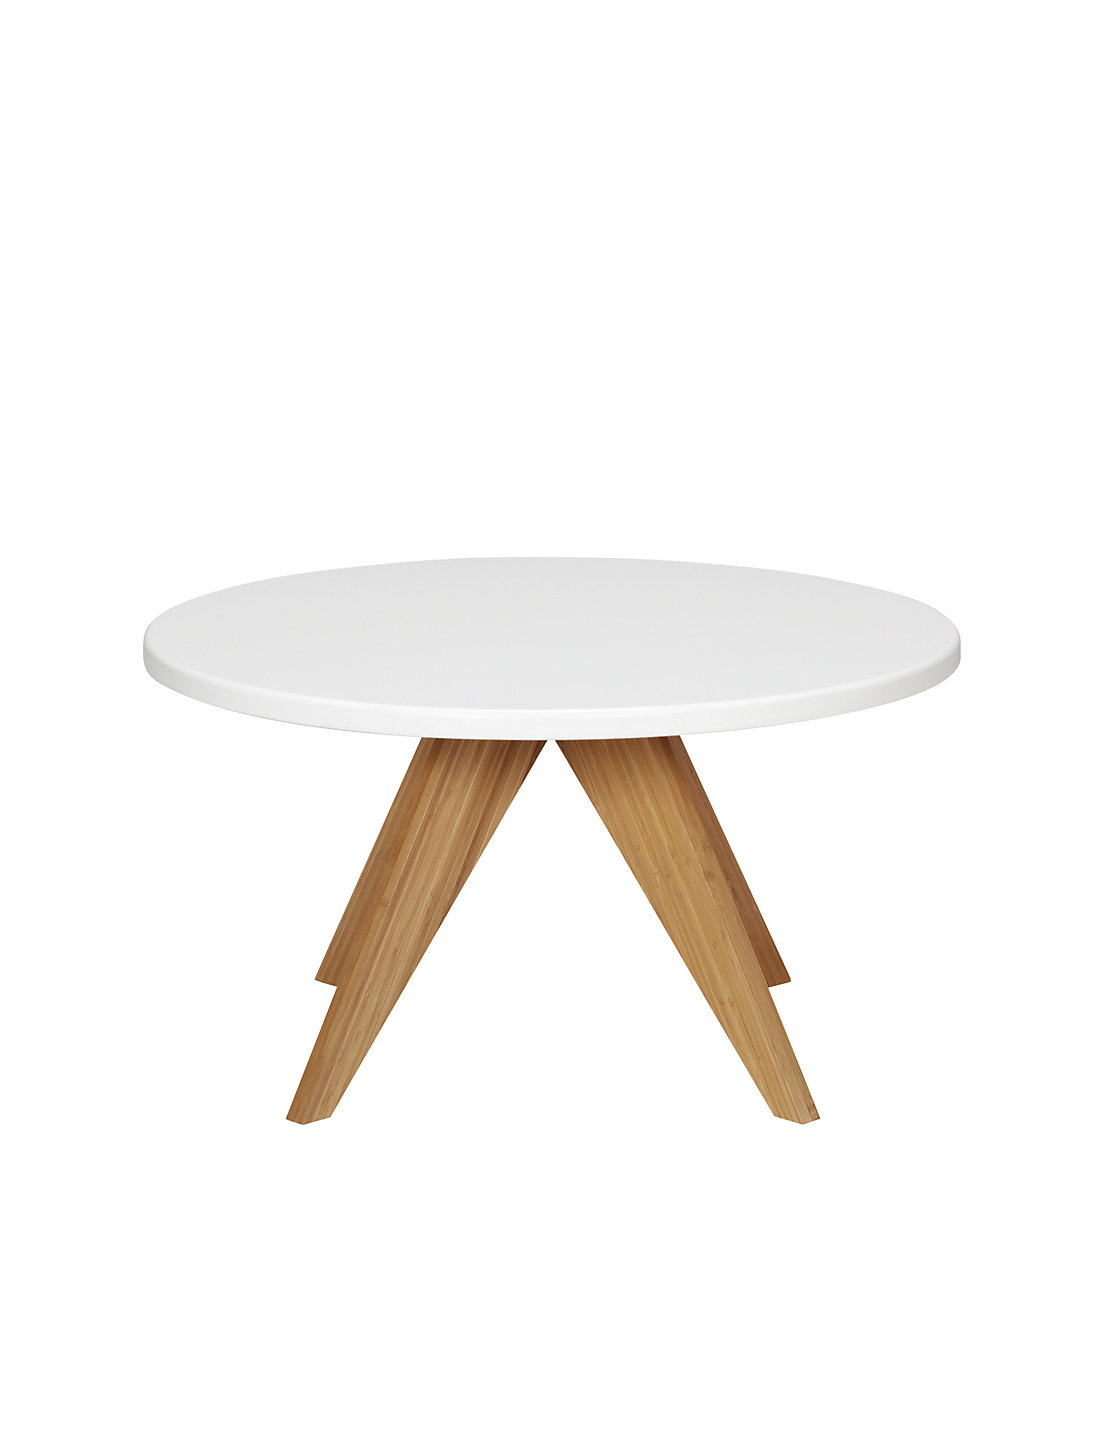 Sapporo white coffee table self assembly ms sapporo white coffee table self assembly geotapseo Choice Image